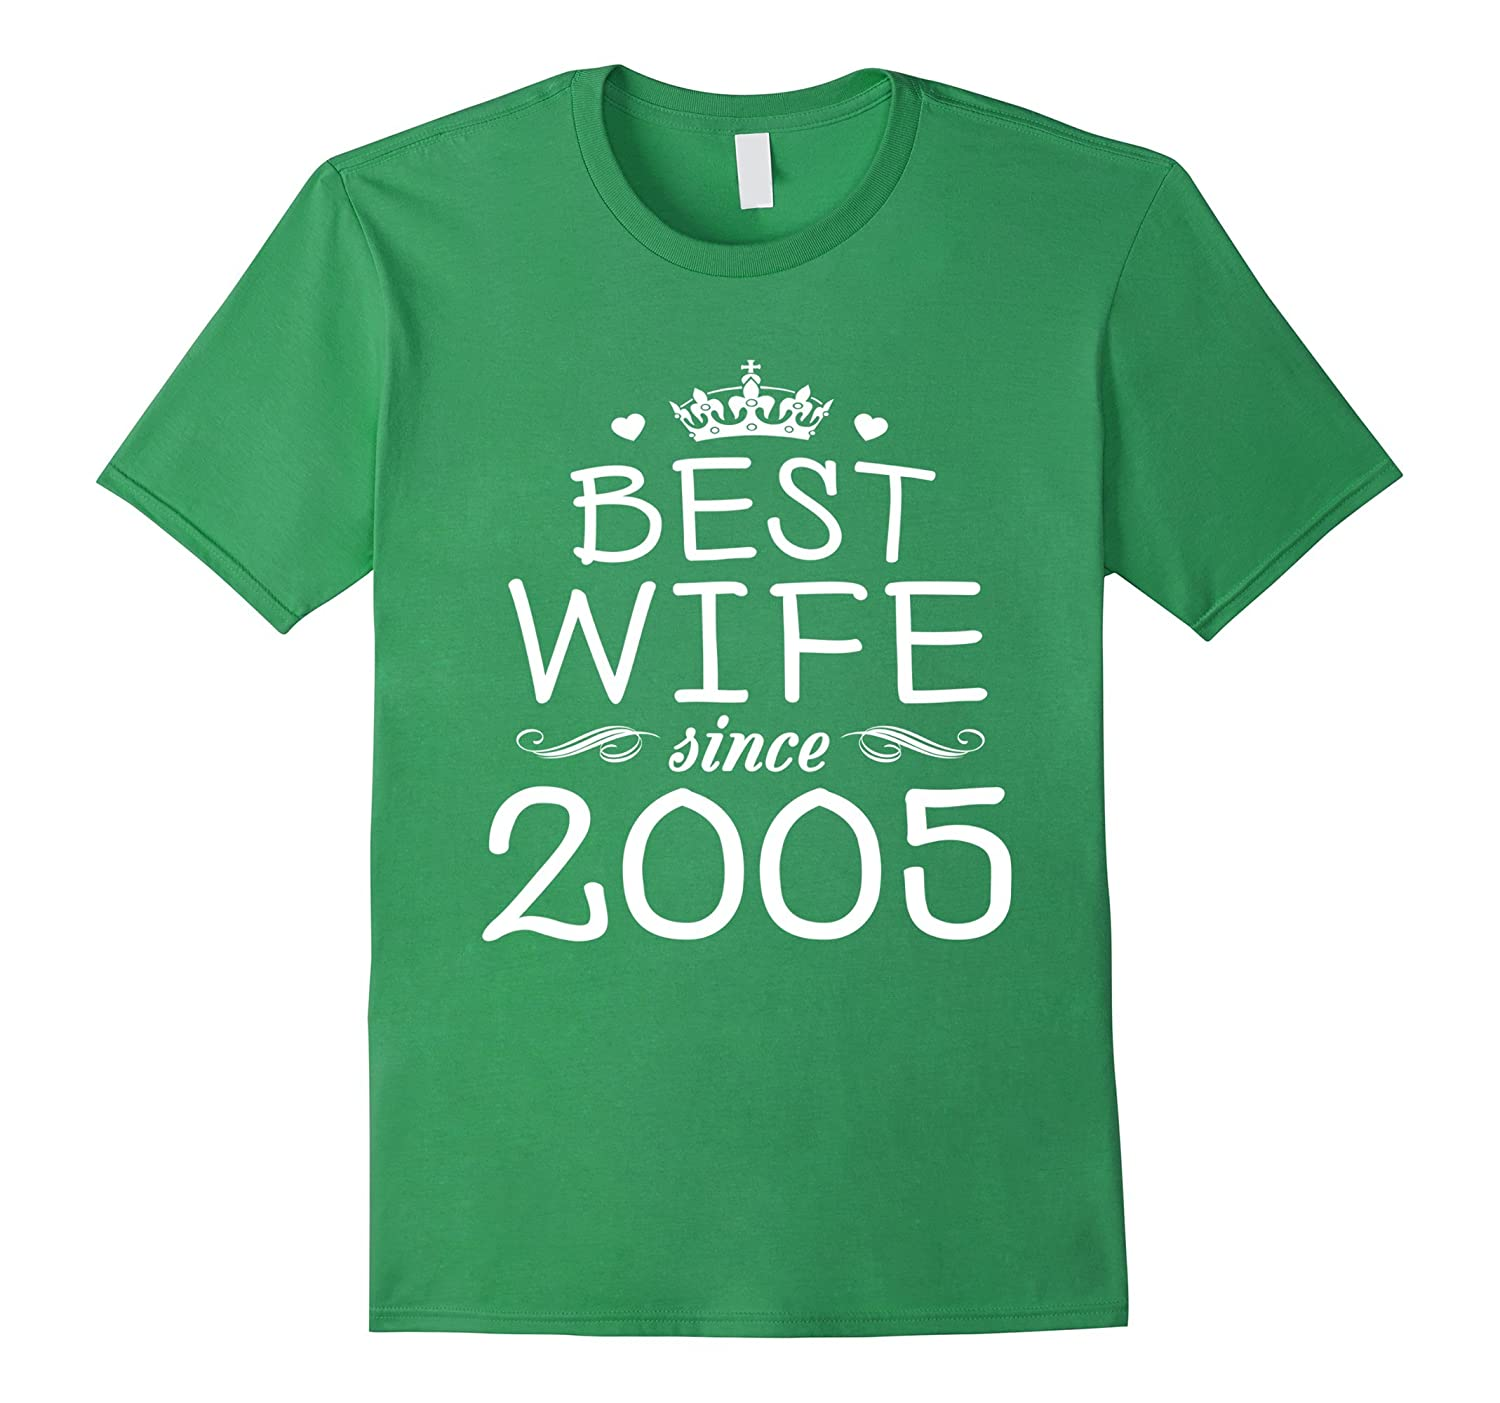 Gift For 12 Year Wedding Anniversary: 12th Wedding Anniversary Gift Ideas For Her-Wife Since